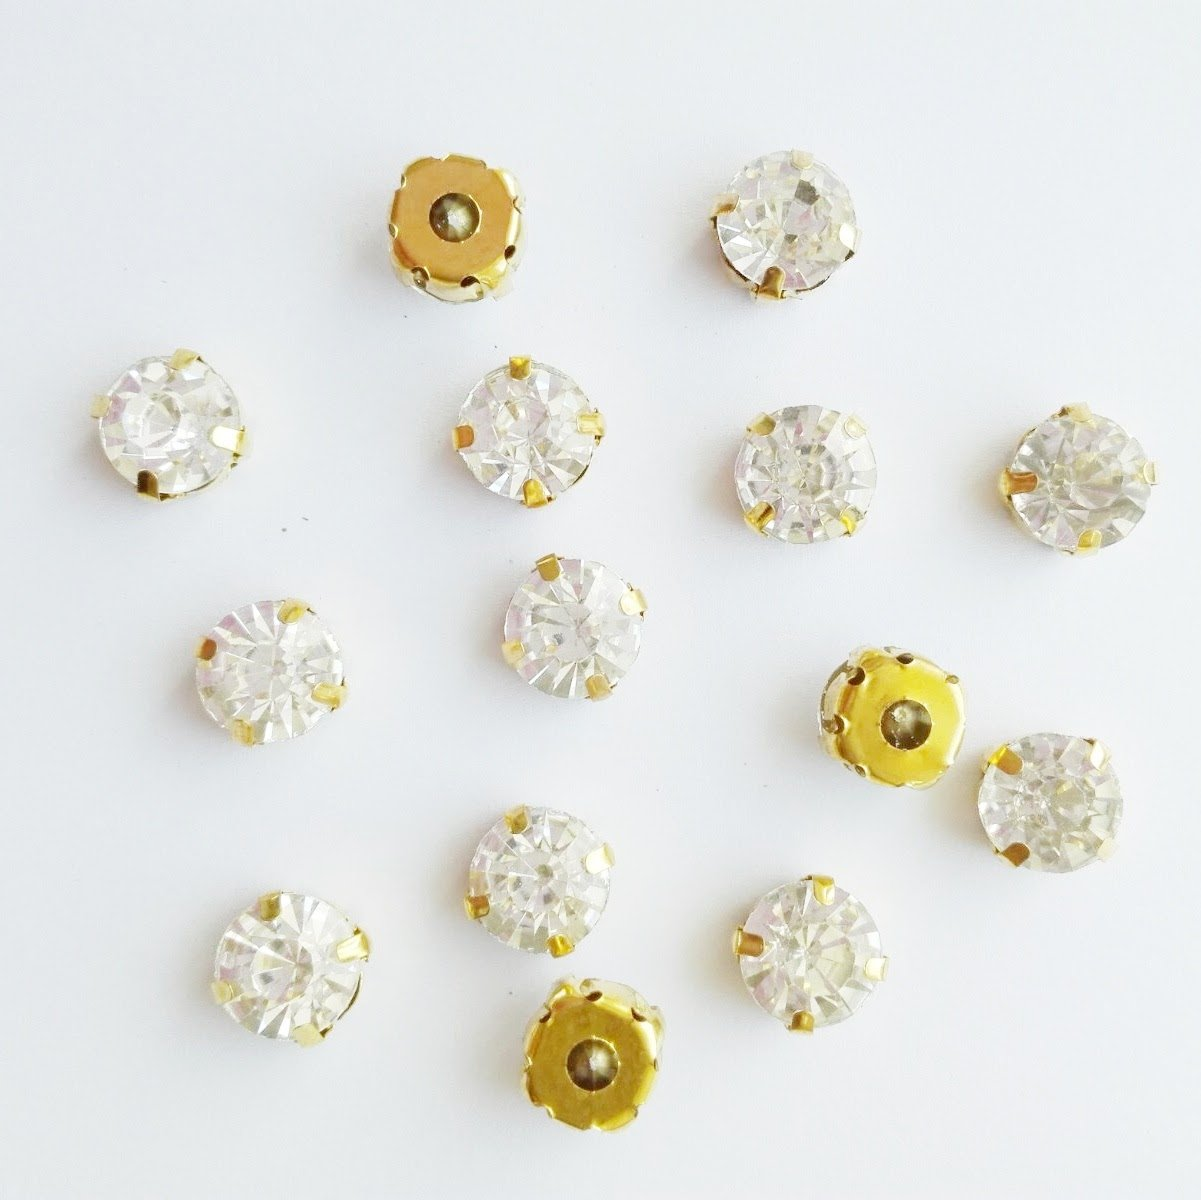 4.5mm 80pcs, Crystal Greatdeal68 3mm to 8mm Glass Rhinestone Sew-on silver settings with 4 holes Crystal//Crystal AB//Color